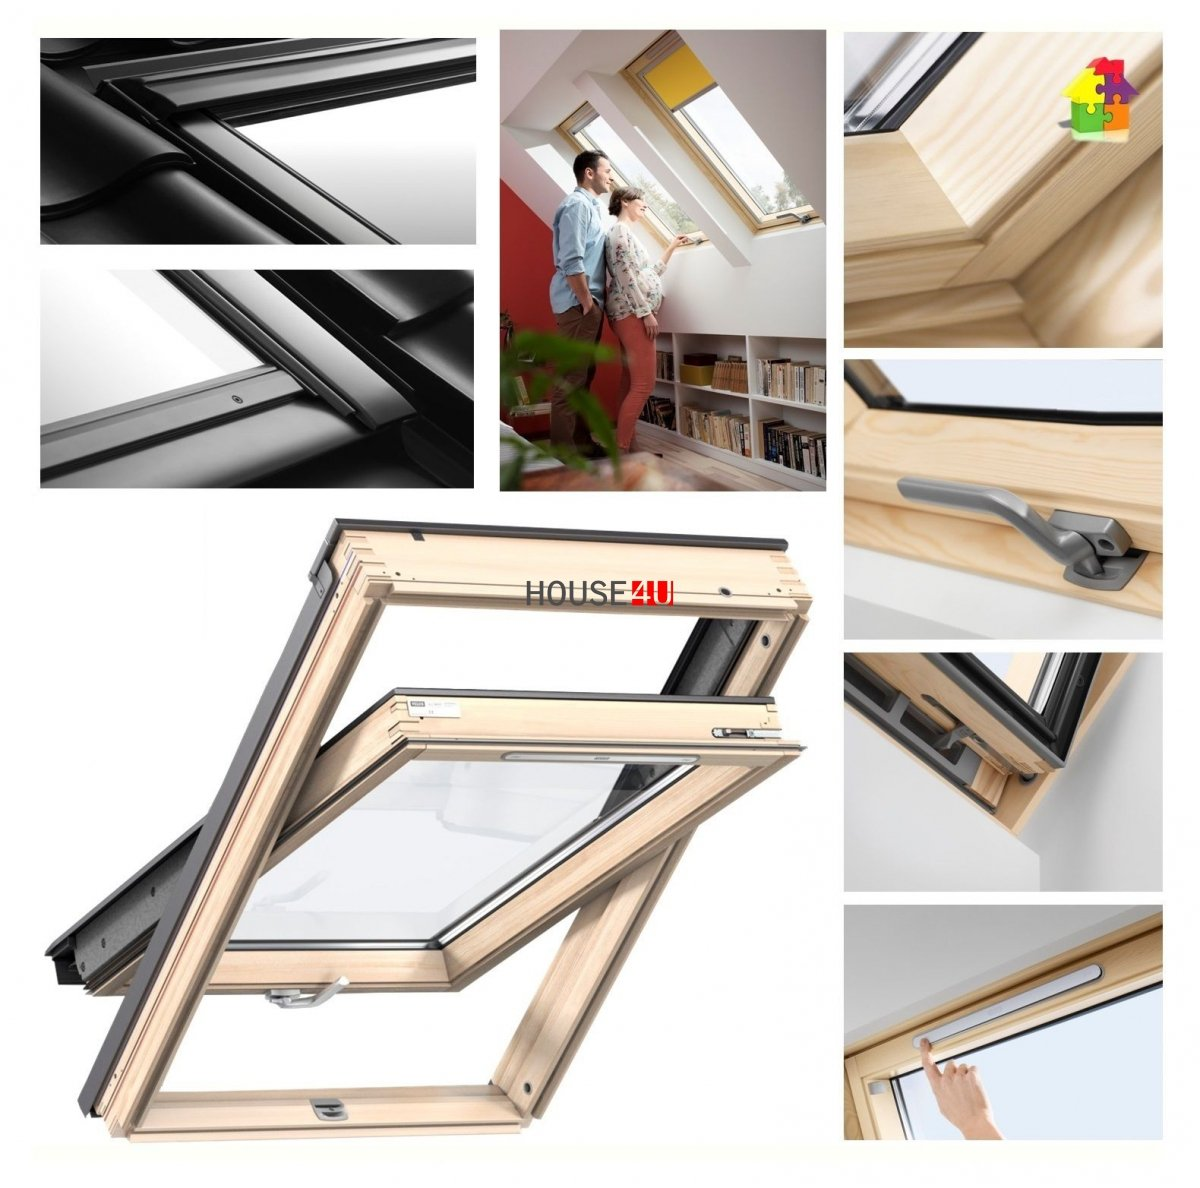 velux dachfenster gzl 1051b schwingfenster aus holz boden griff uw 1 3 thermo 2 fach veglasung. Black Bedroom Furniture Sets. Home Design Ideas